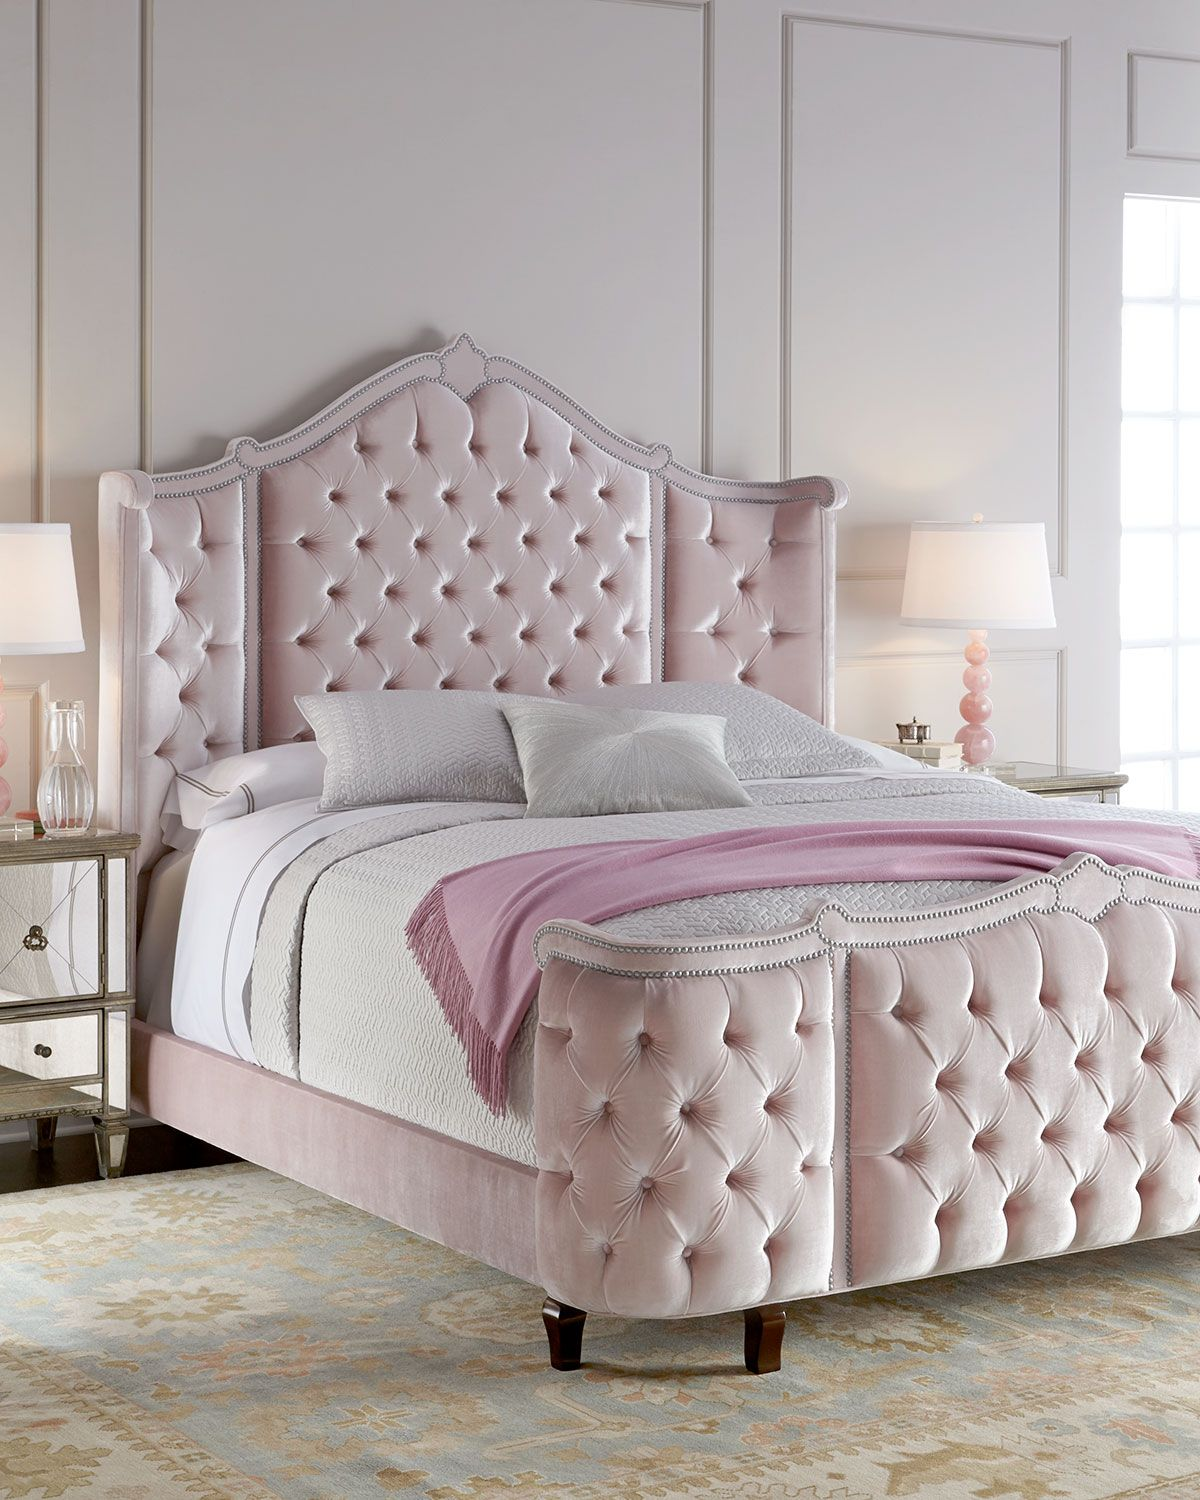 Haute House Pippa Tufted Beds Bedroom Decor Bedroom Furniture